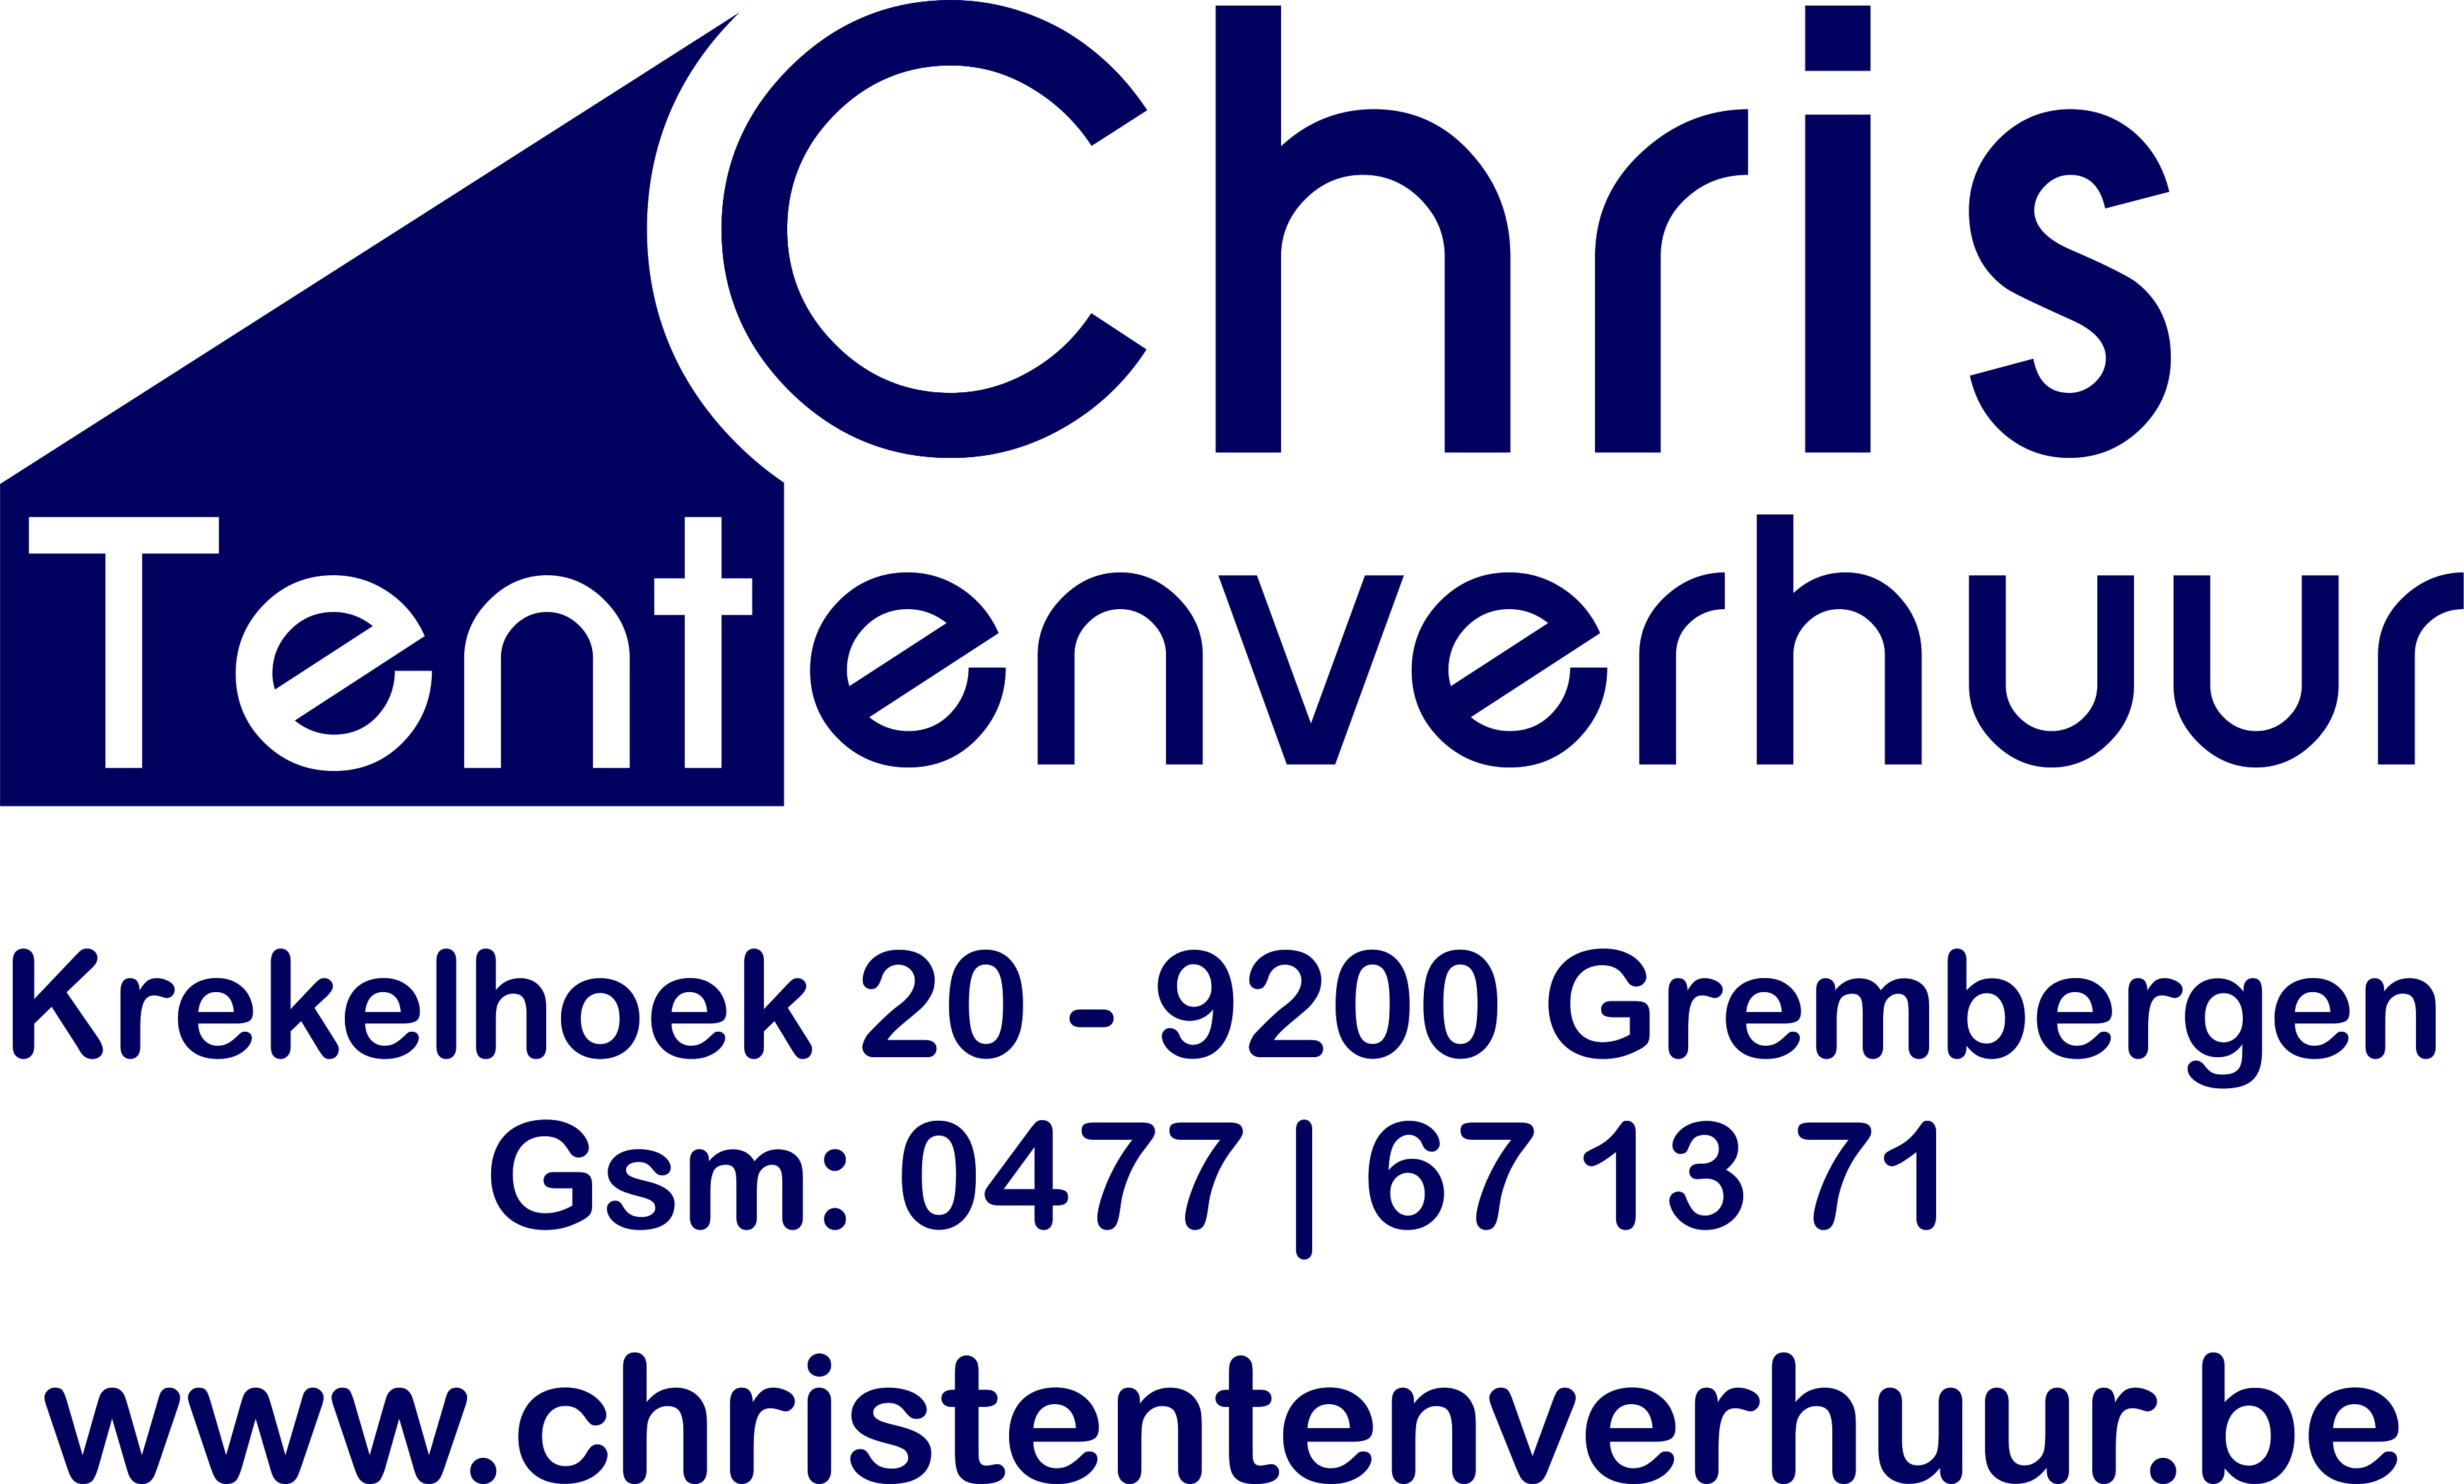 Chris tentenverhuur